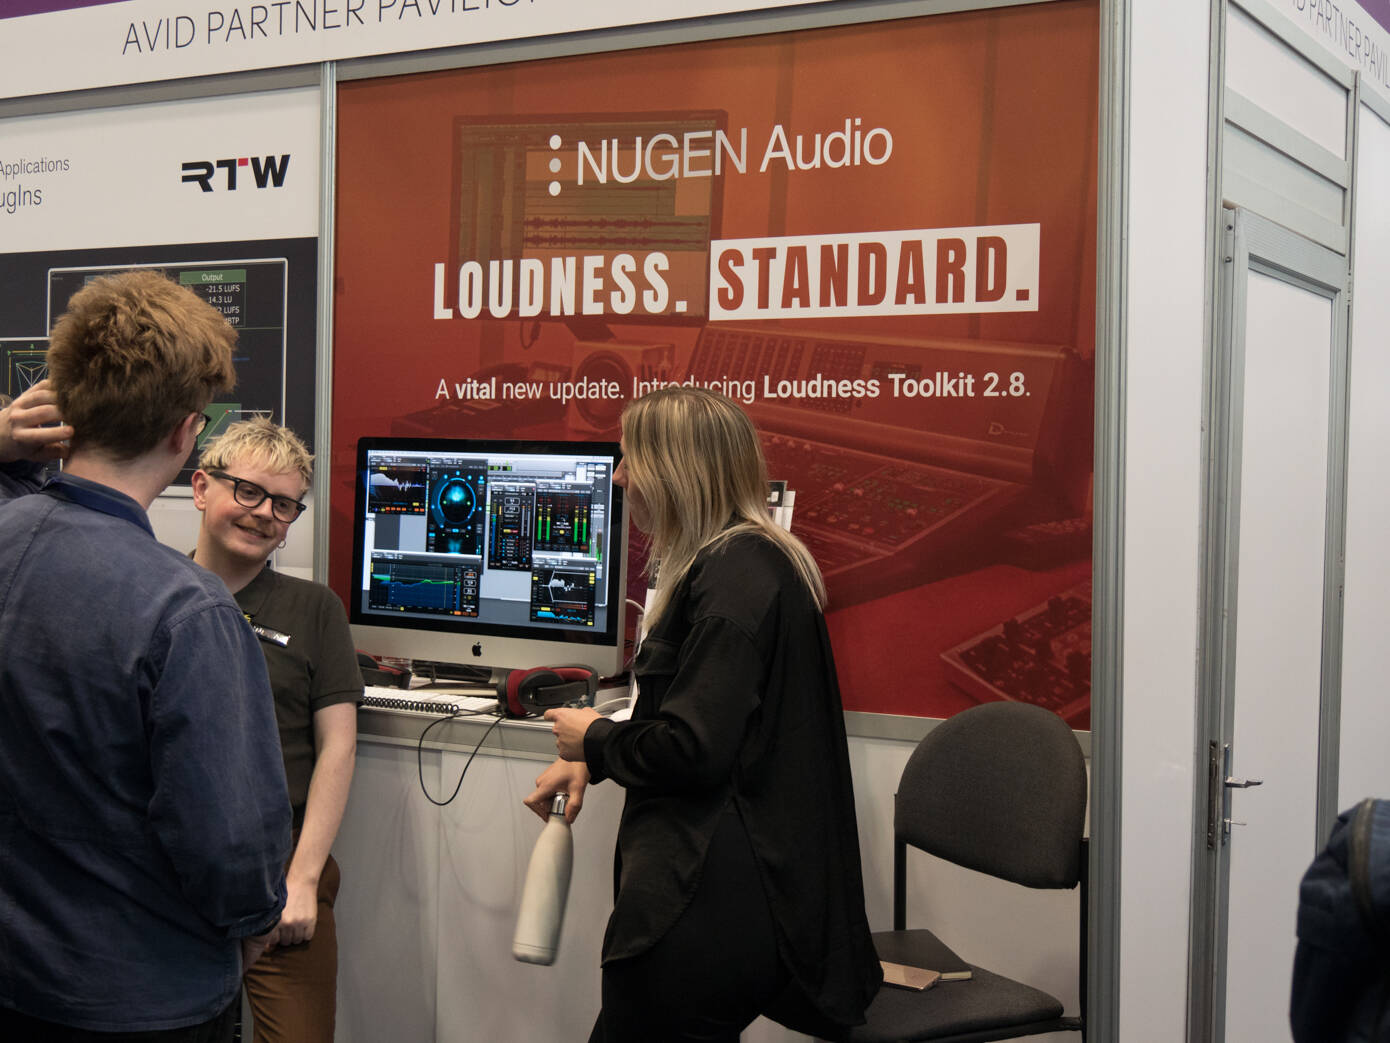 AES2018 Rock oN Nugen Audio